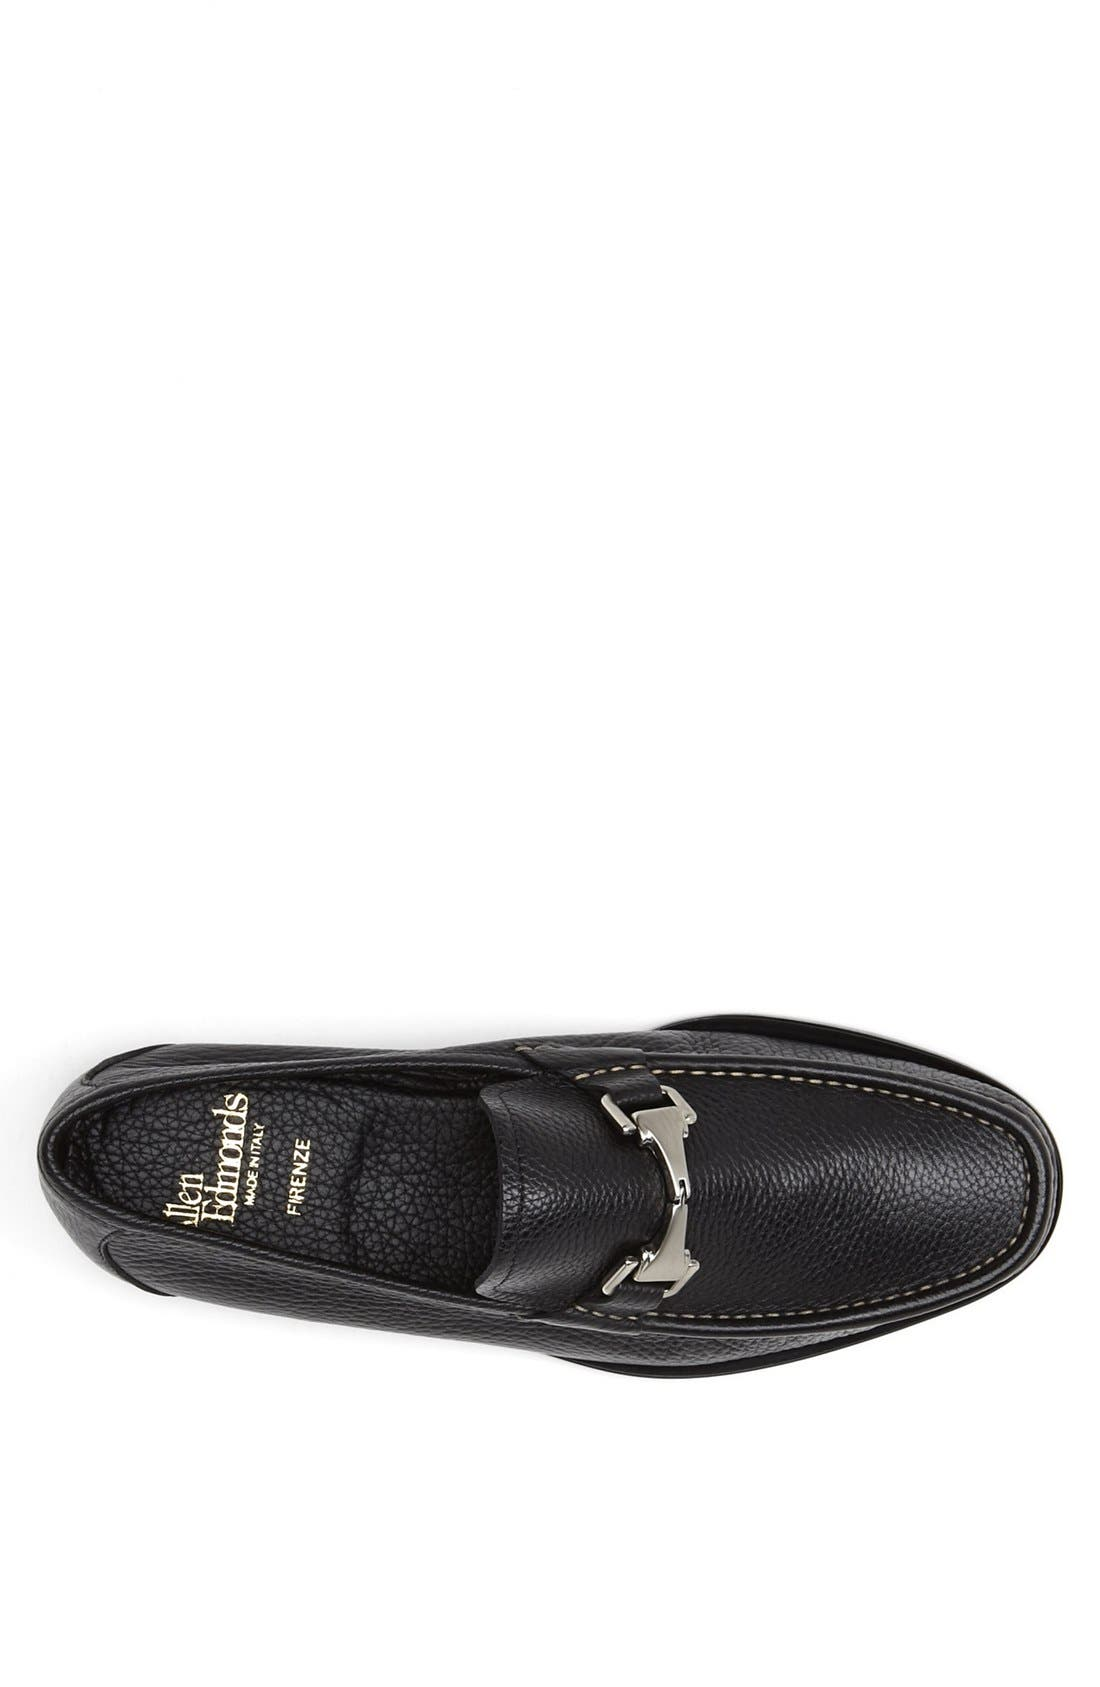 Alternate Image 3  - Allen Edmonds 'Firenze' Bit Loafer (Men)